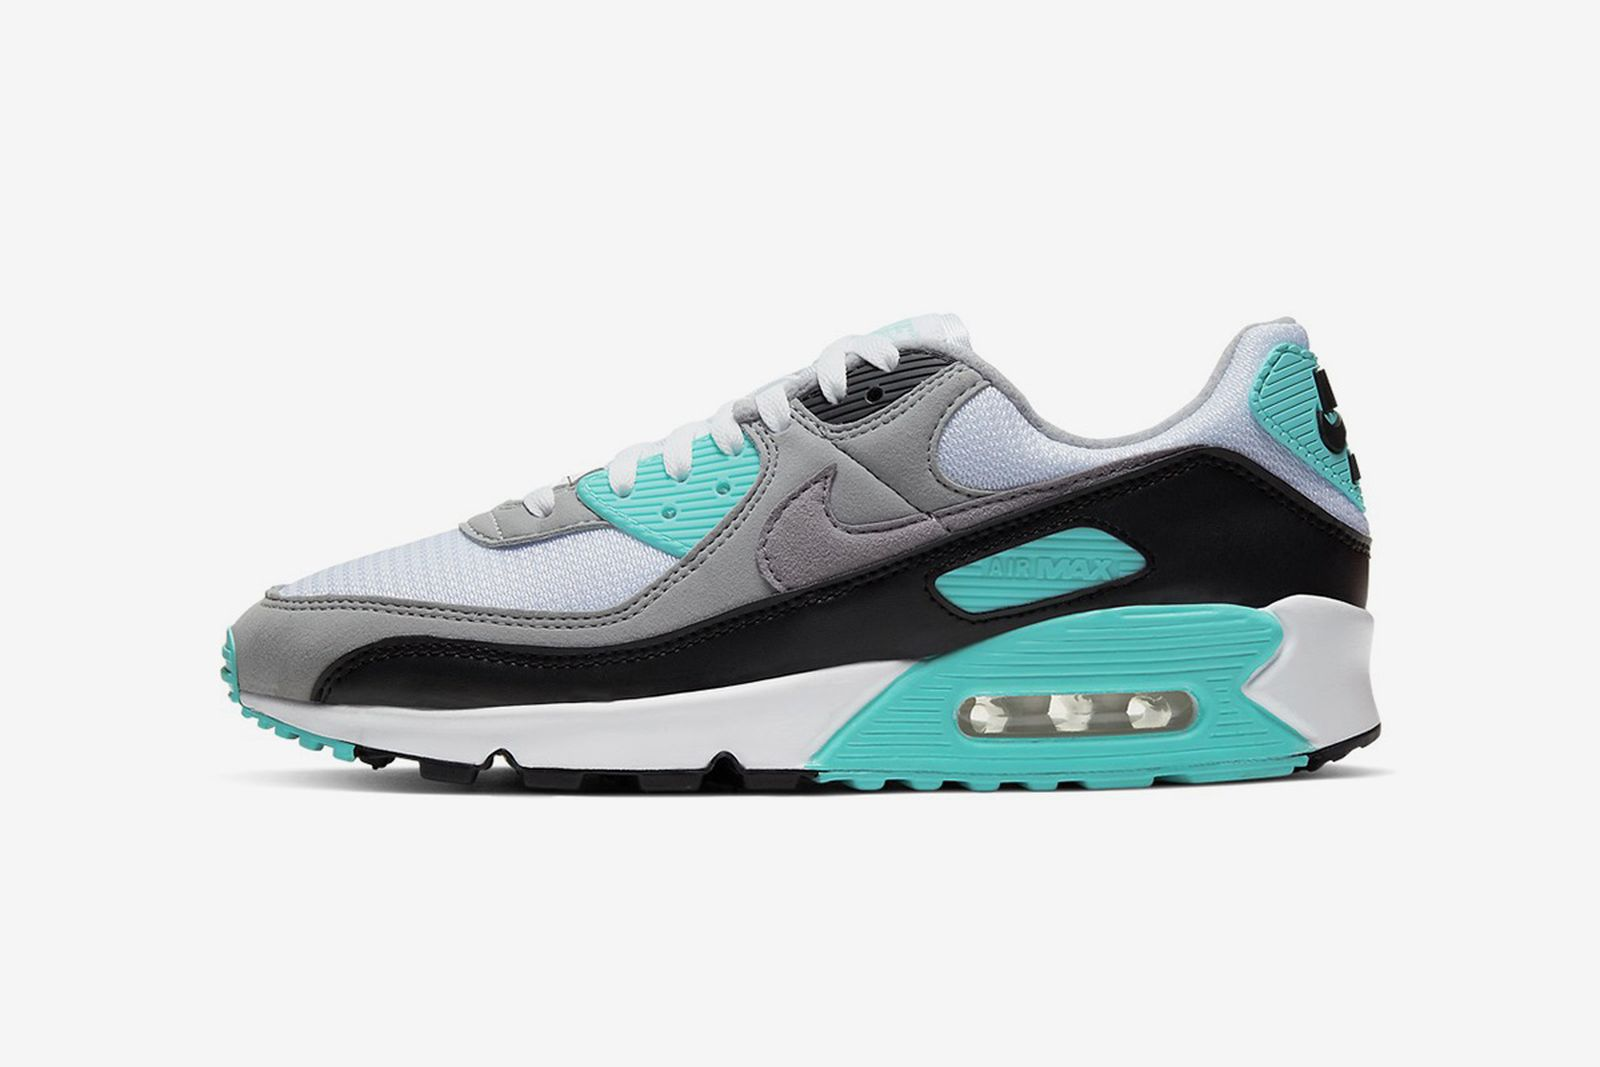 nike-air-max-90-30th-anniversary-colorways-release-date-price-1-01